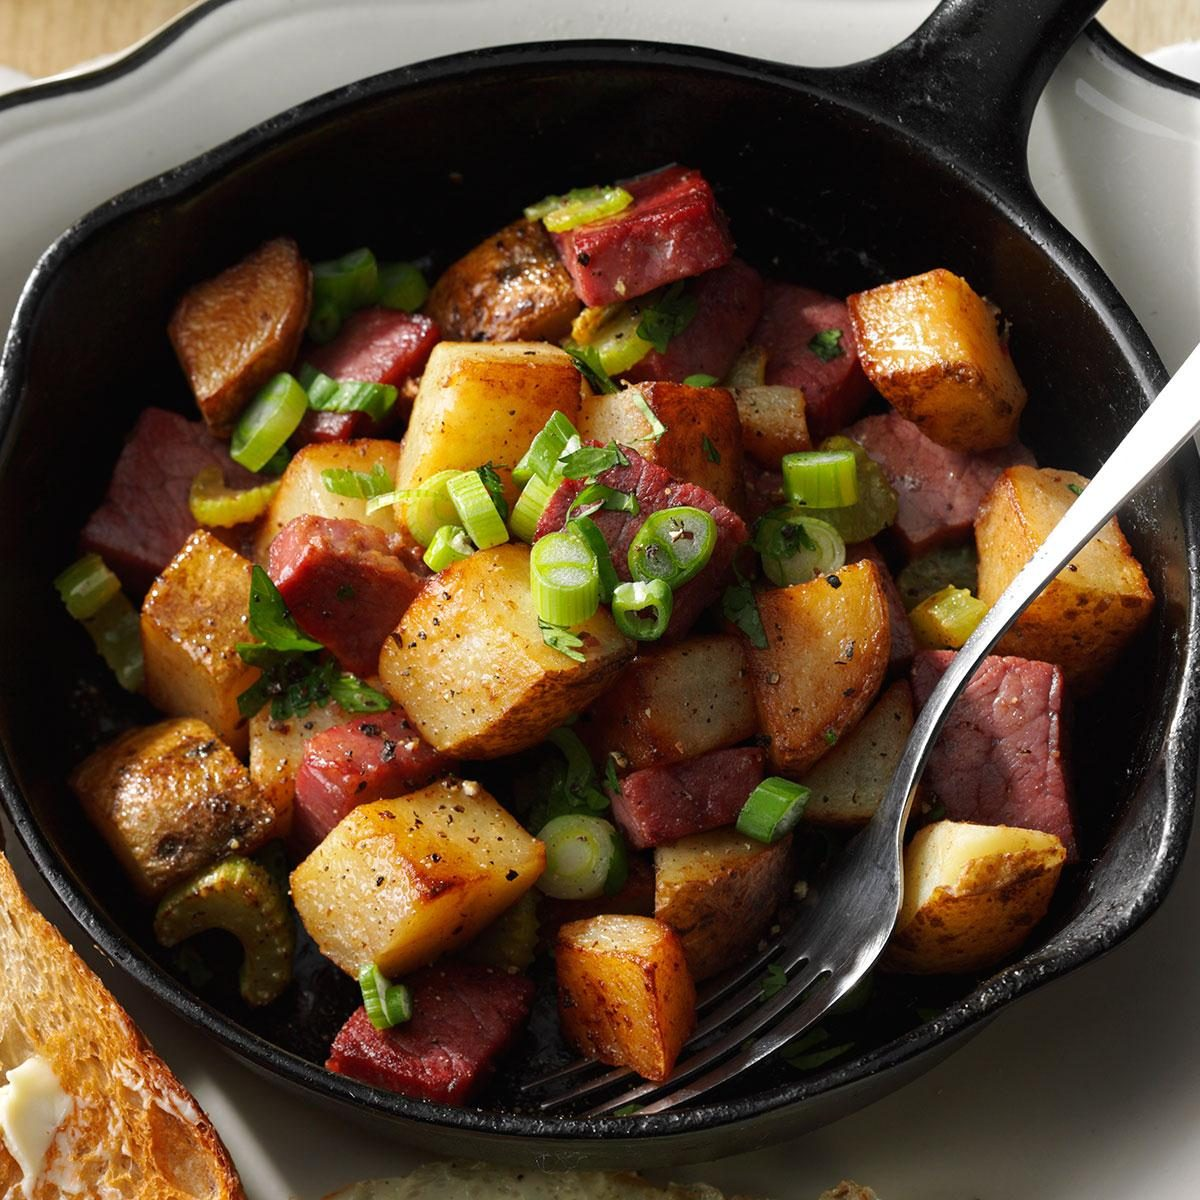 September 27: National Corned Beef Hash Day